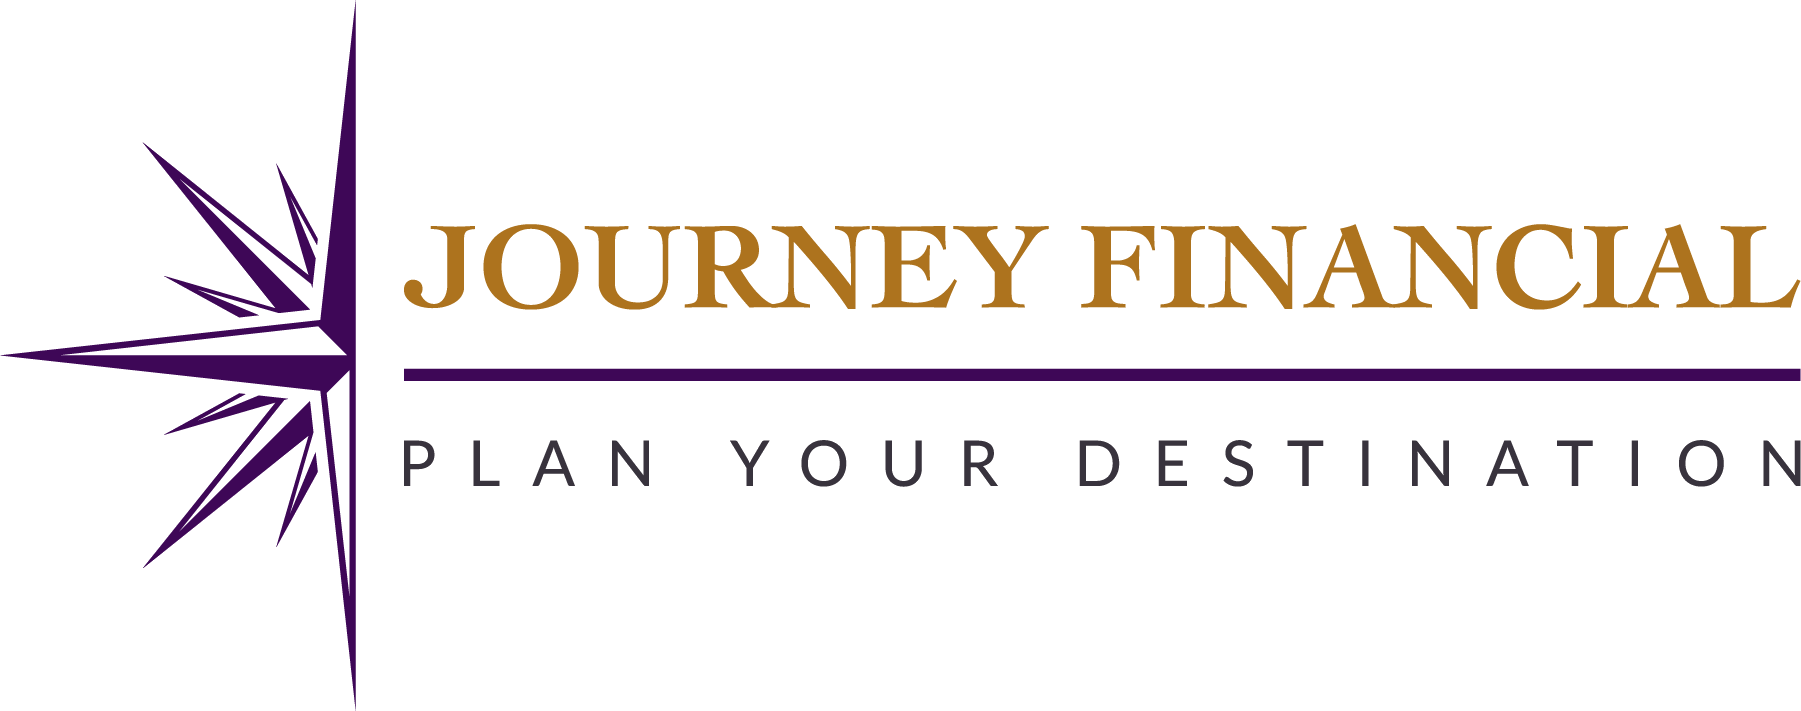 The Journey Financial